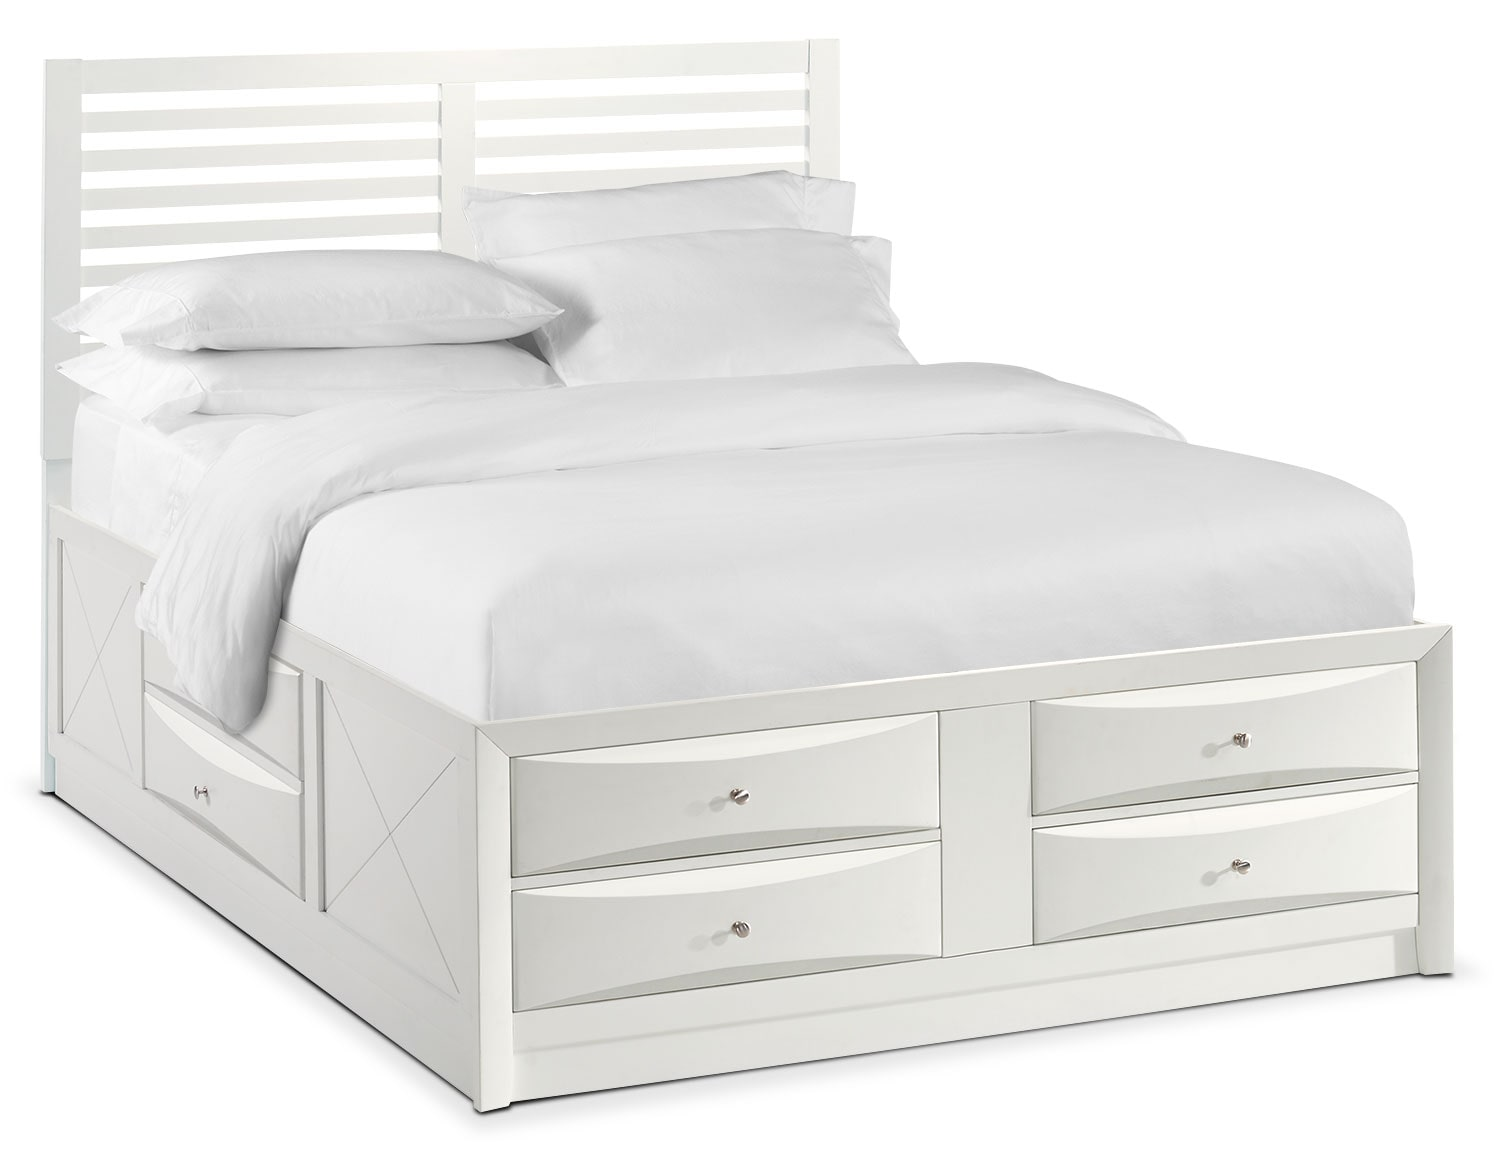 Bedroom Furniture - Braden Full Slat Bed with Storage - White